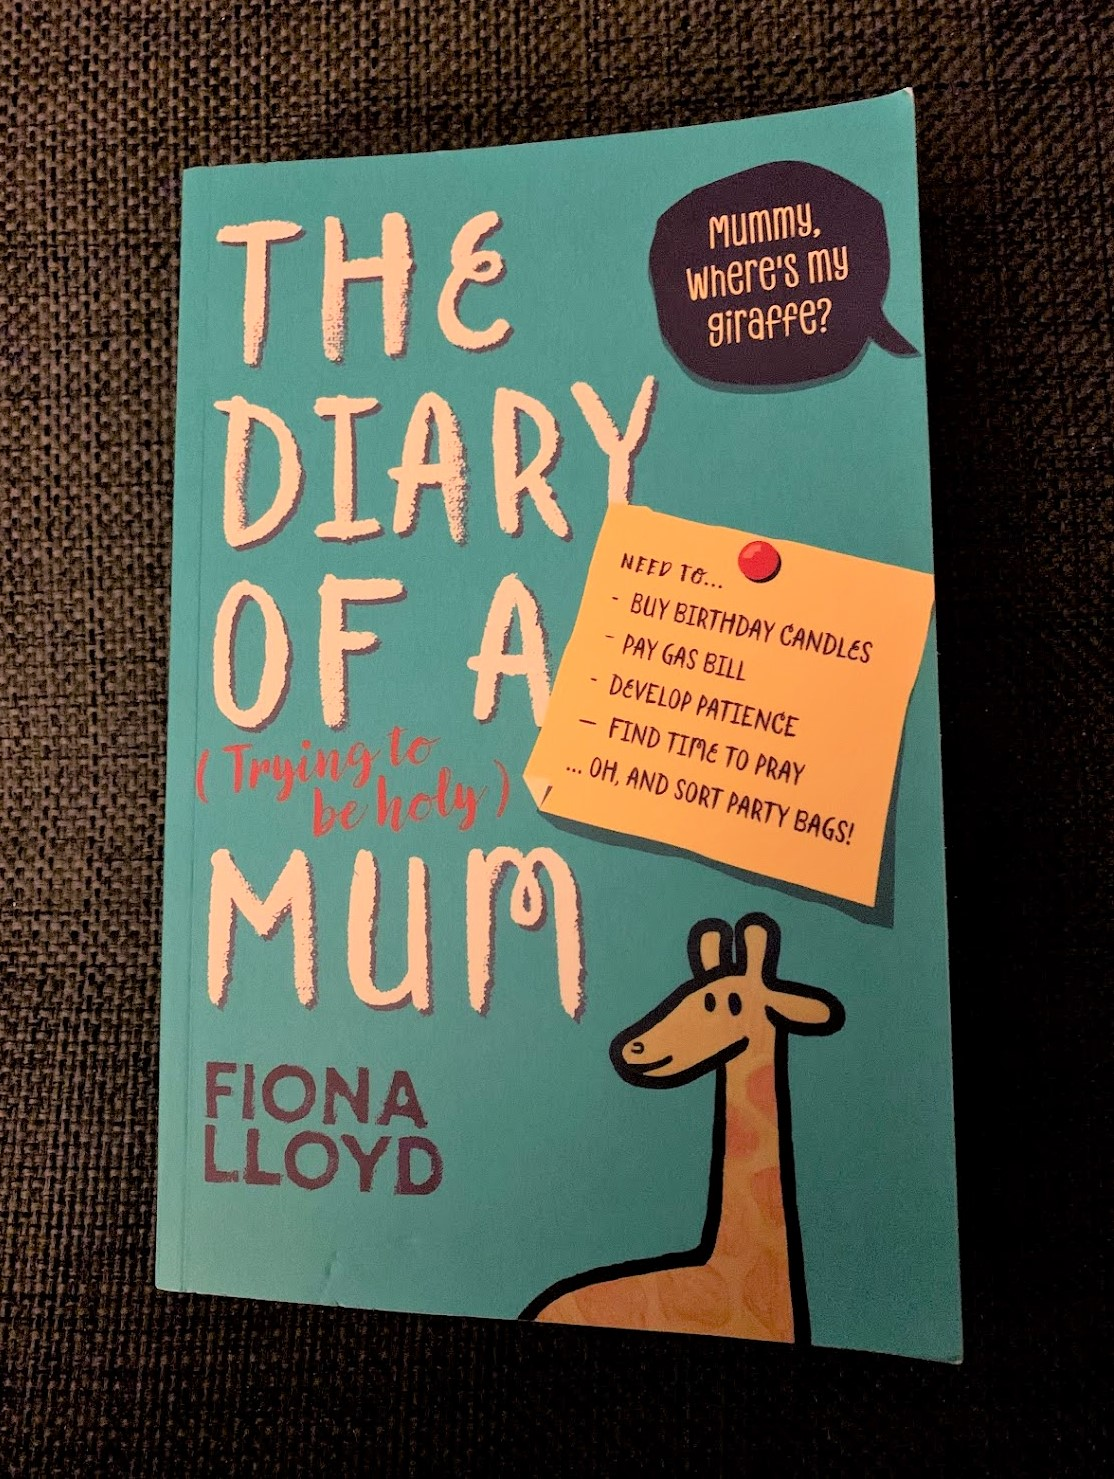 Fiona Lloyd - The Diary of a (Trying to be Holy) Mum